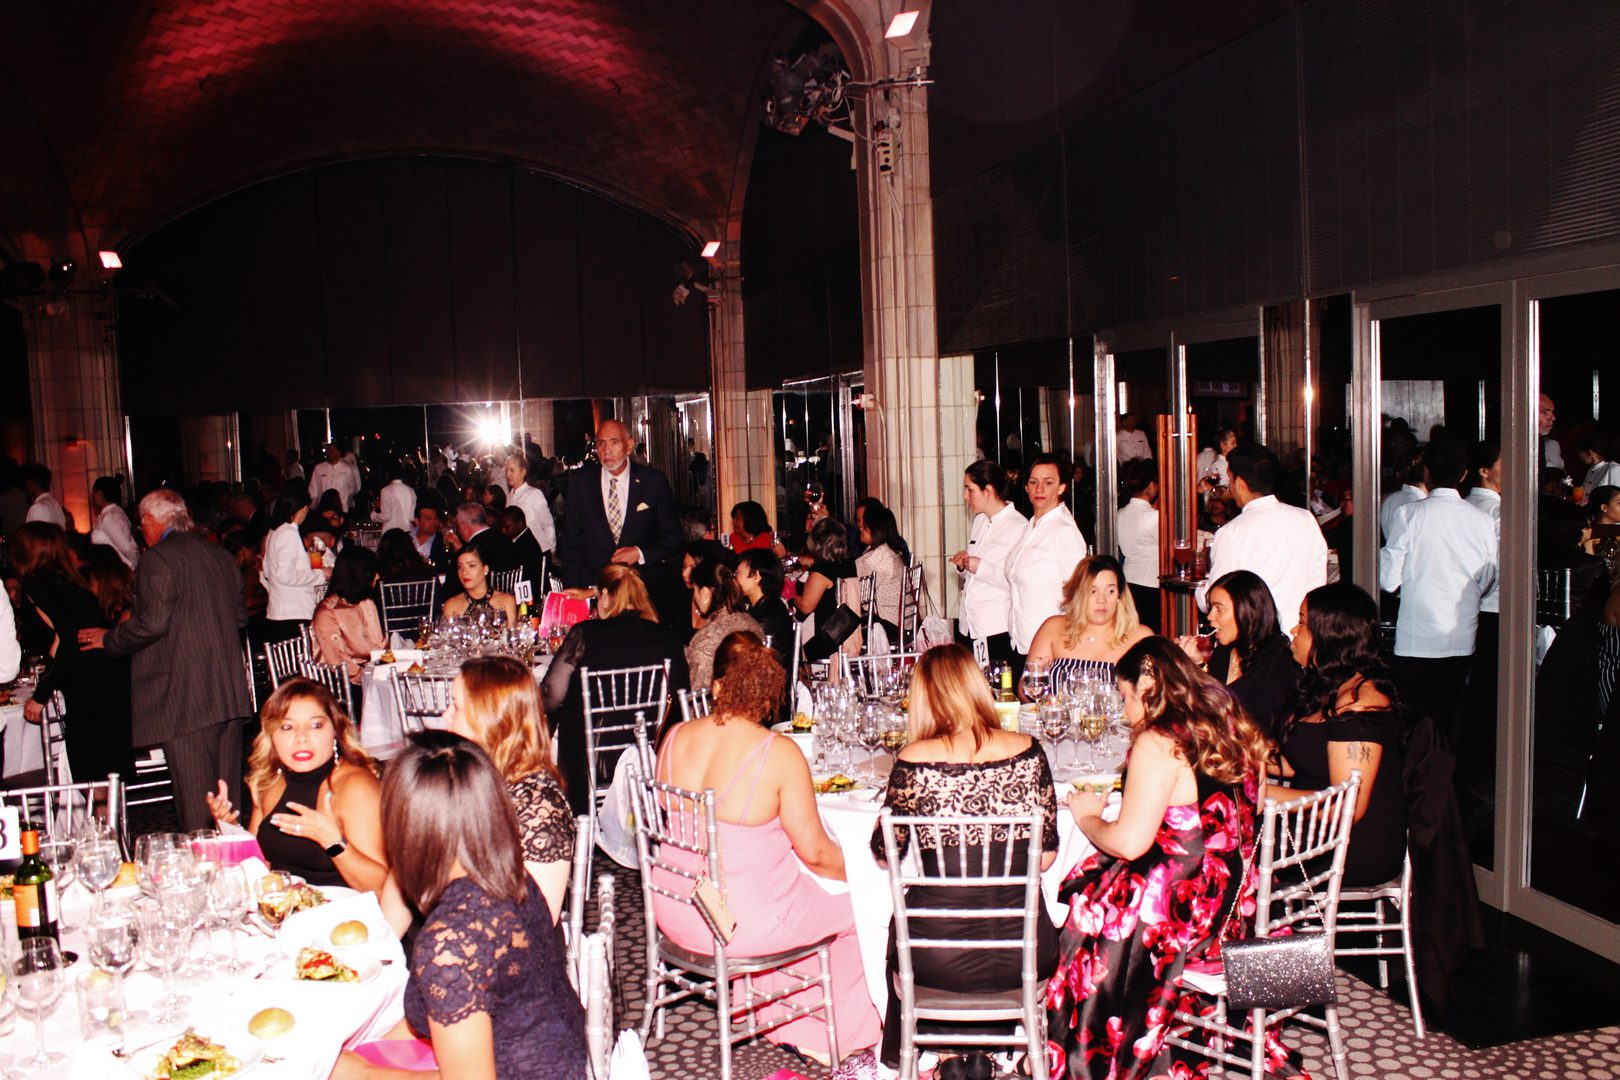 Guests eating at the dining area